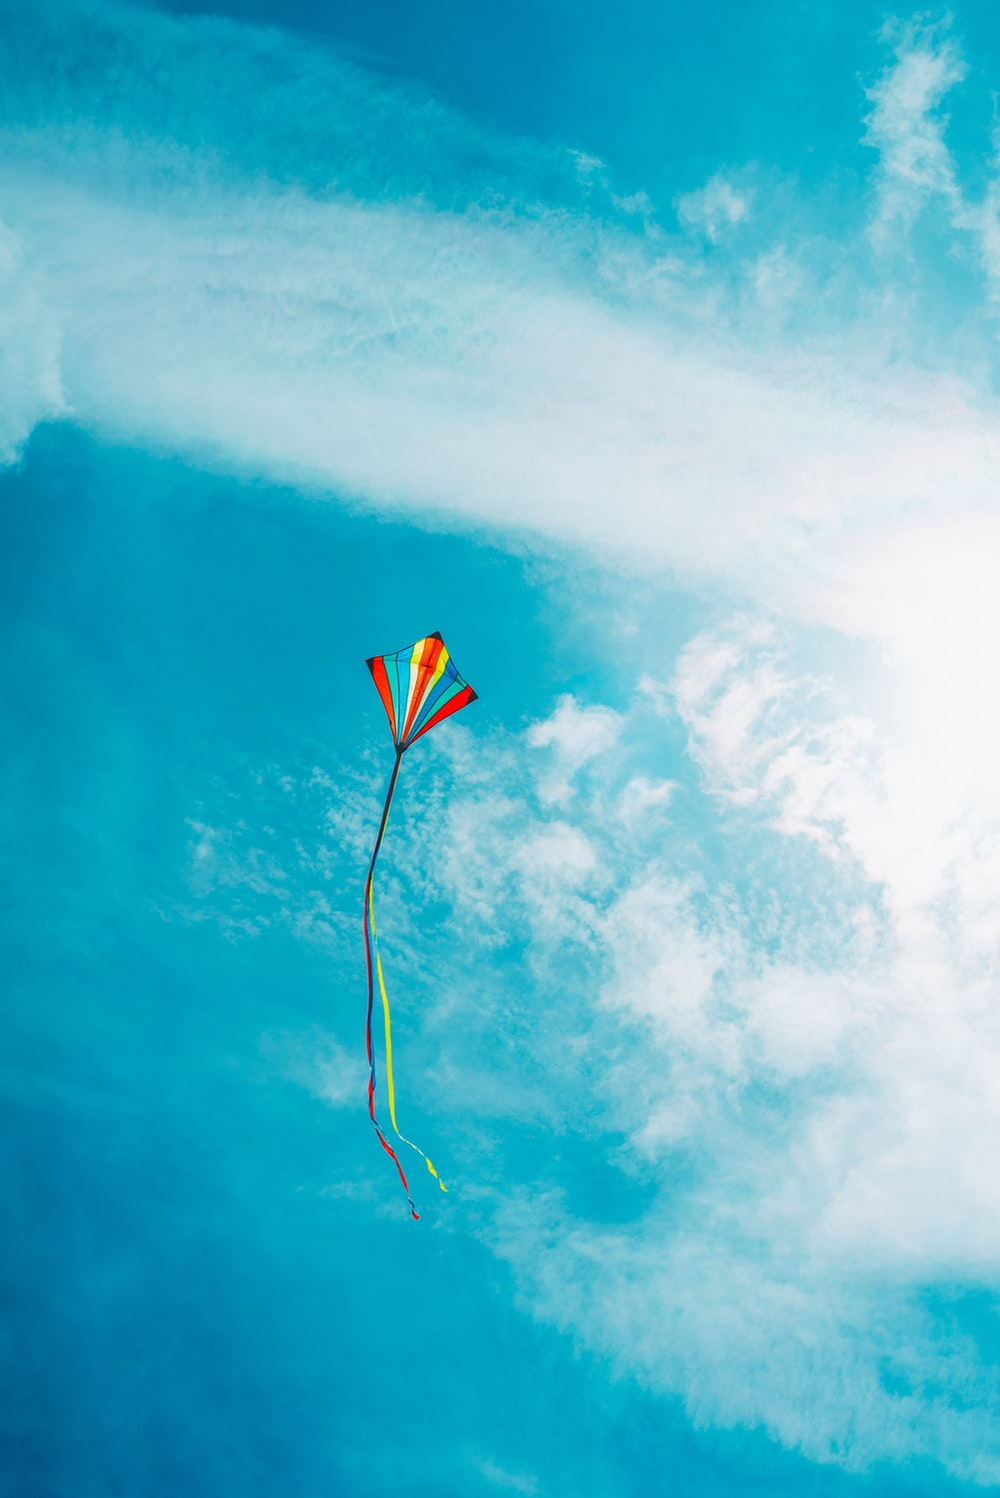 red and yellow kite flying under blue sky during daytime